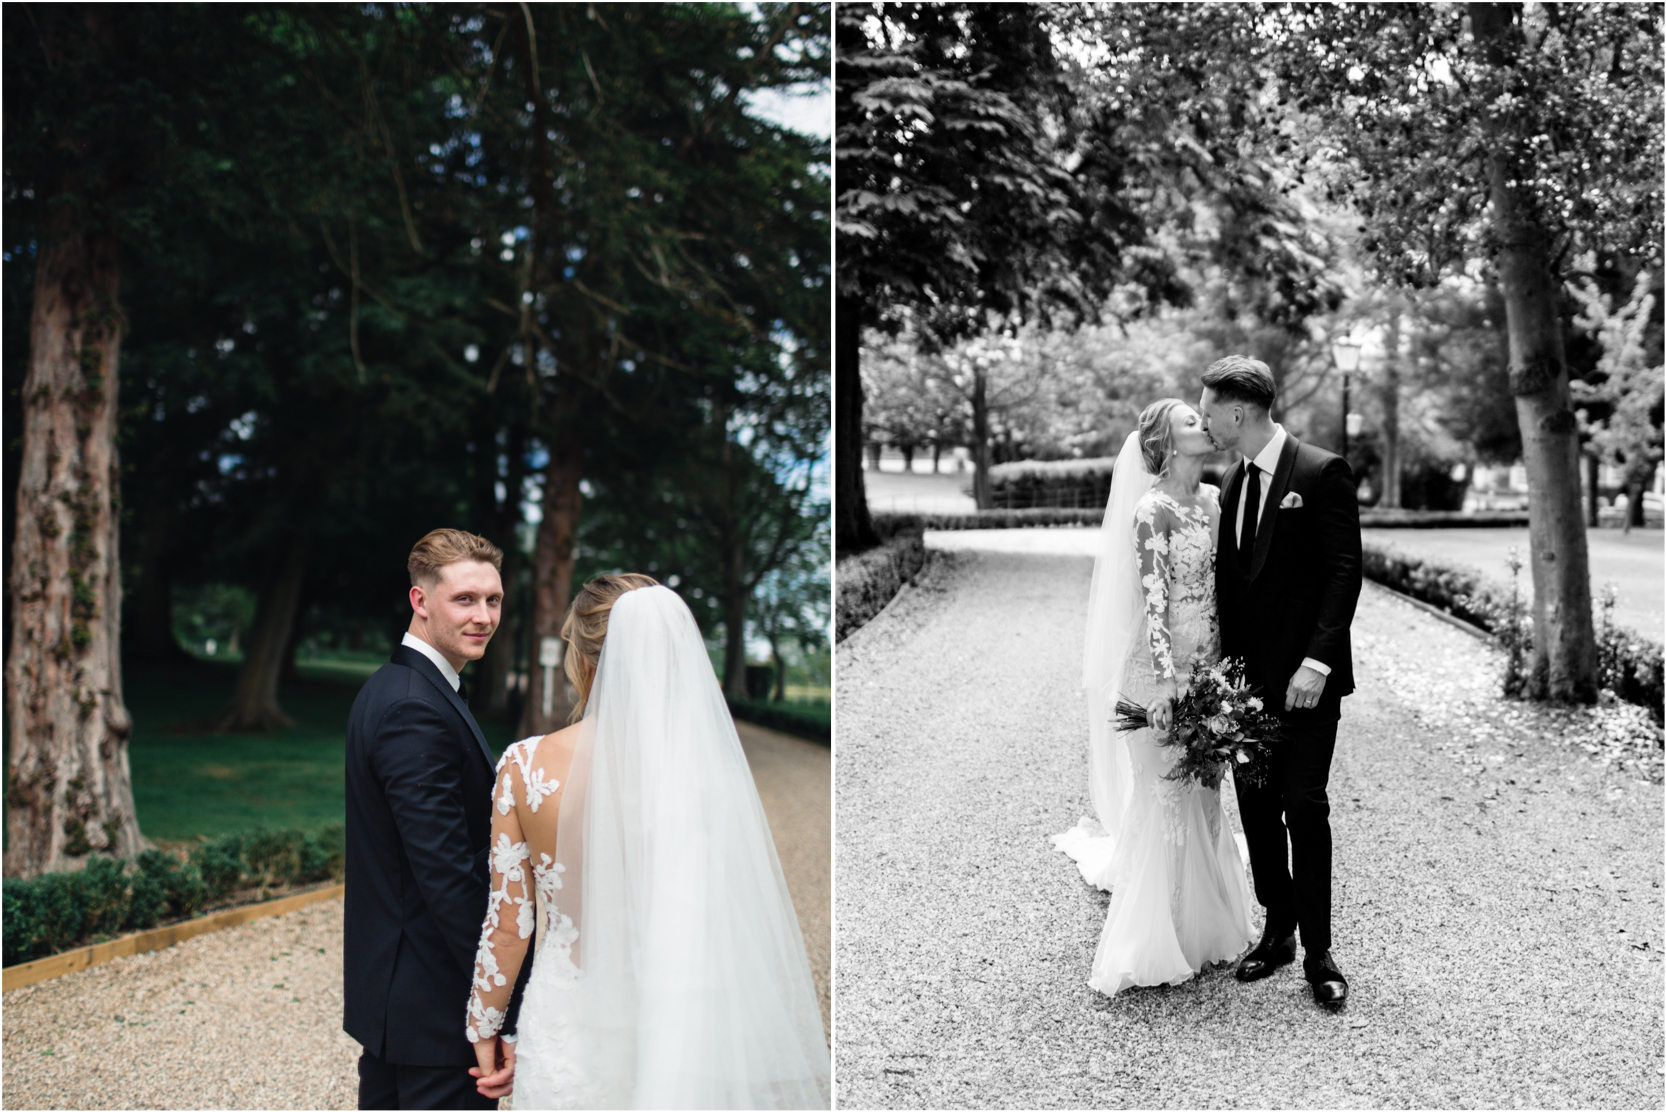 Gosfield Hall Wedding Photography Surrey Luxury Photographer 68.jpg